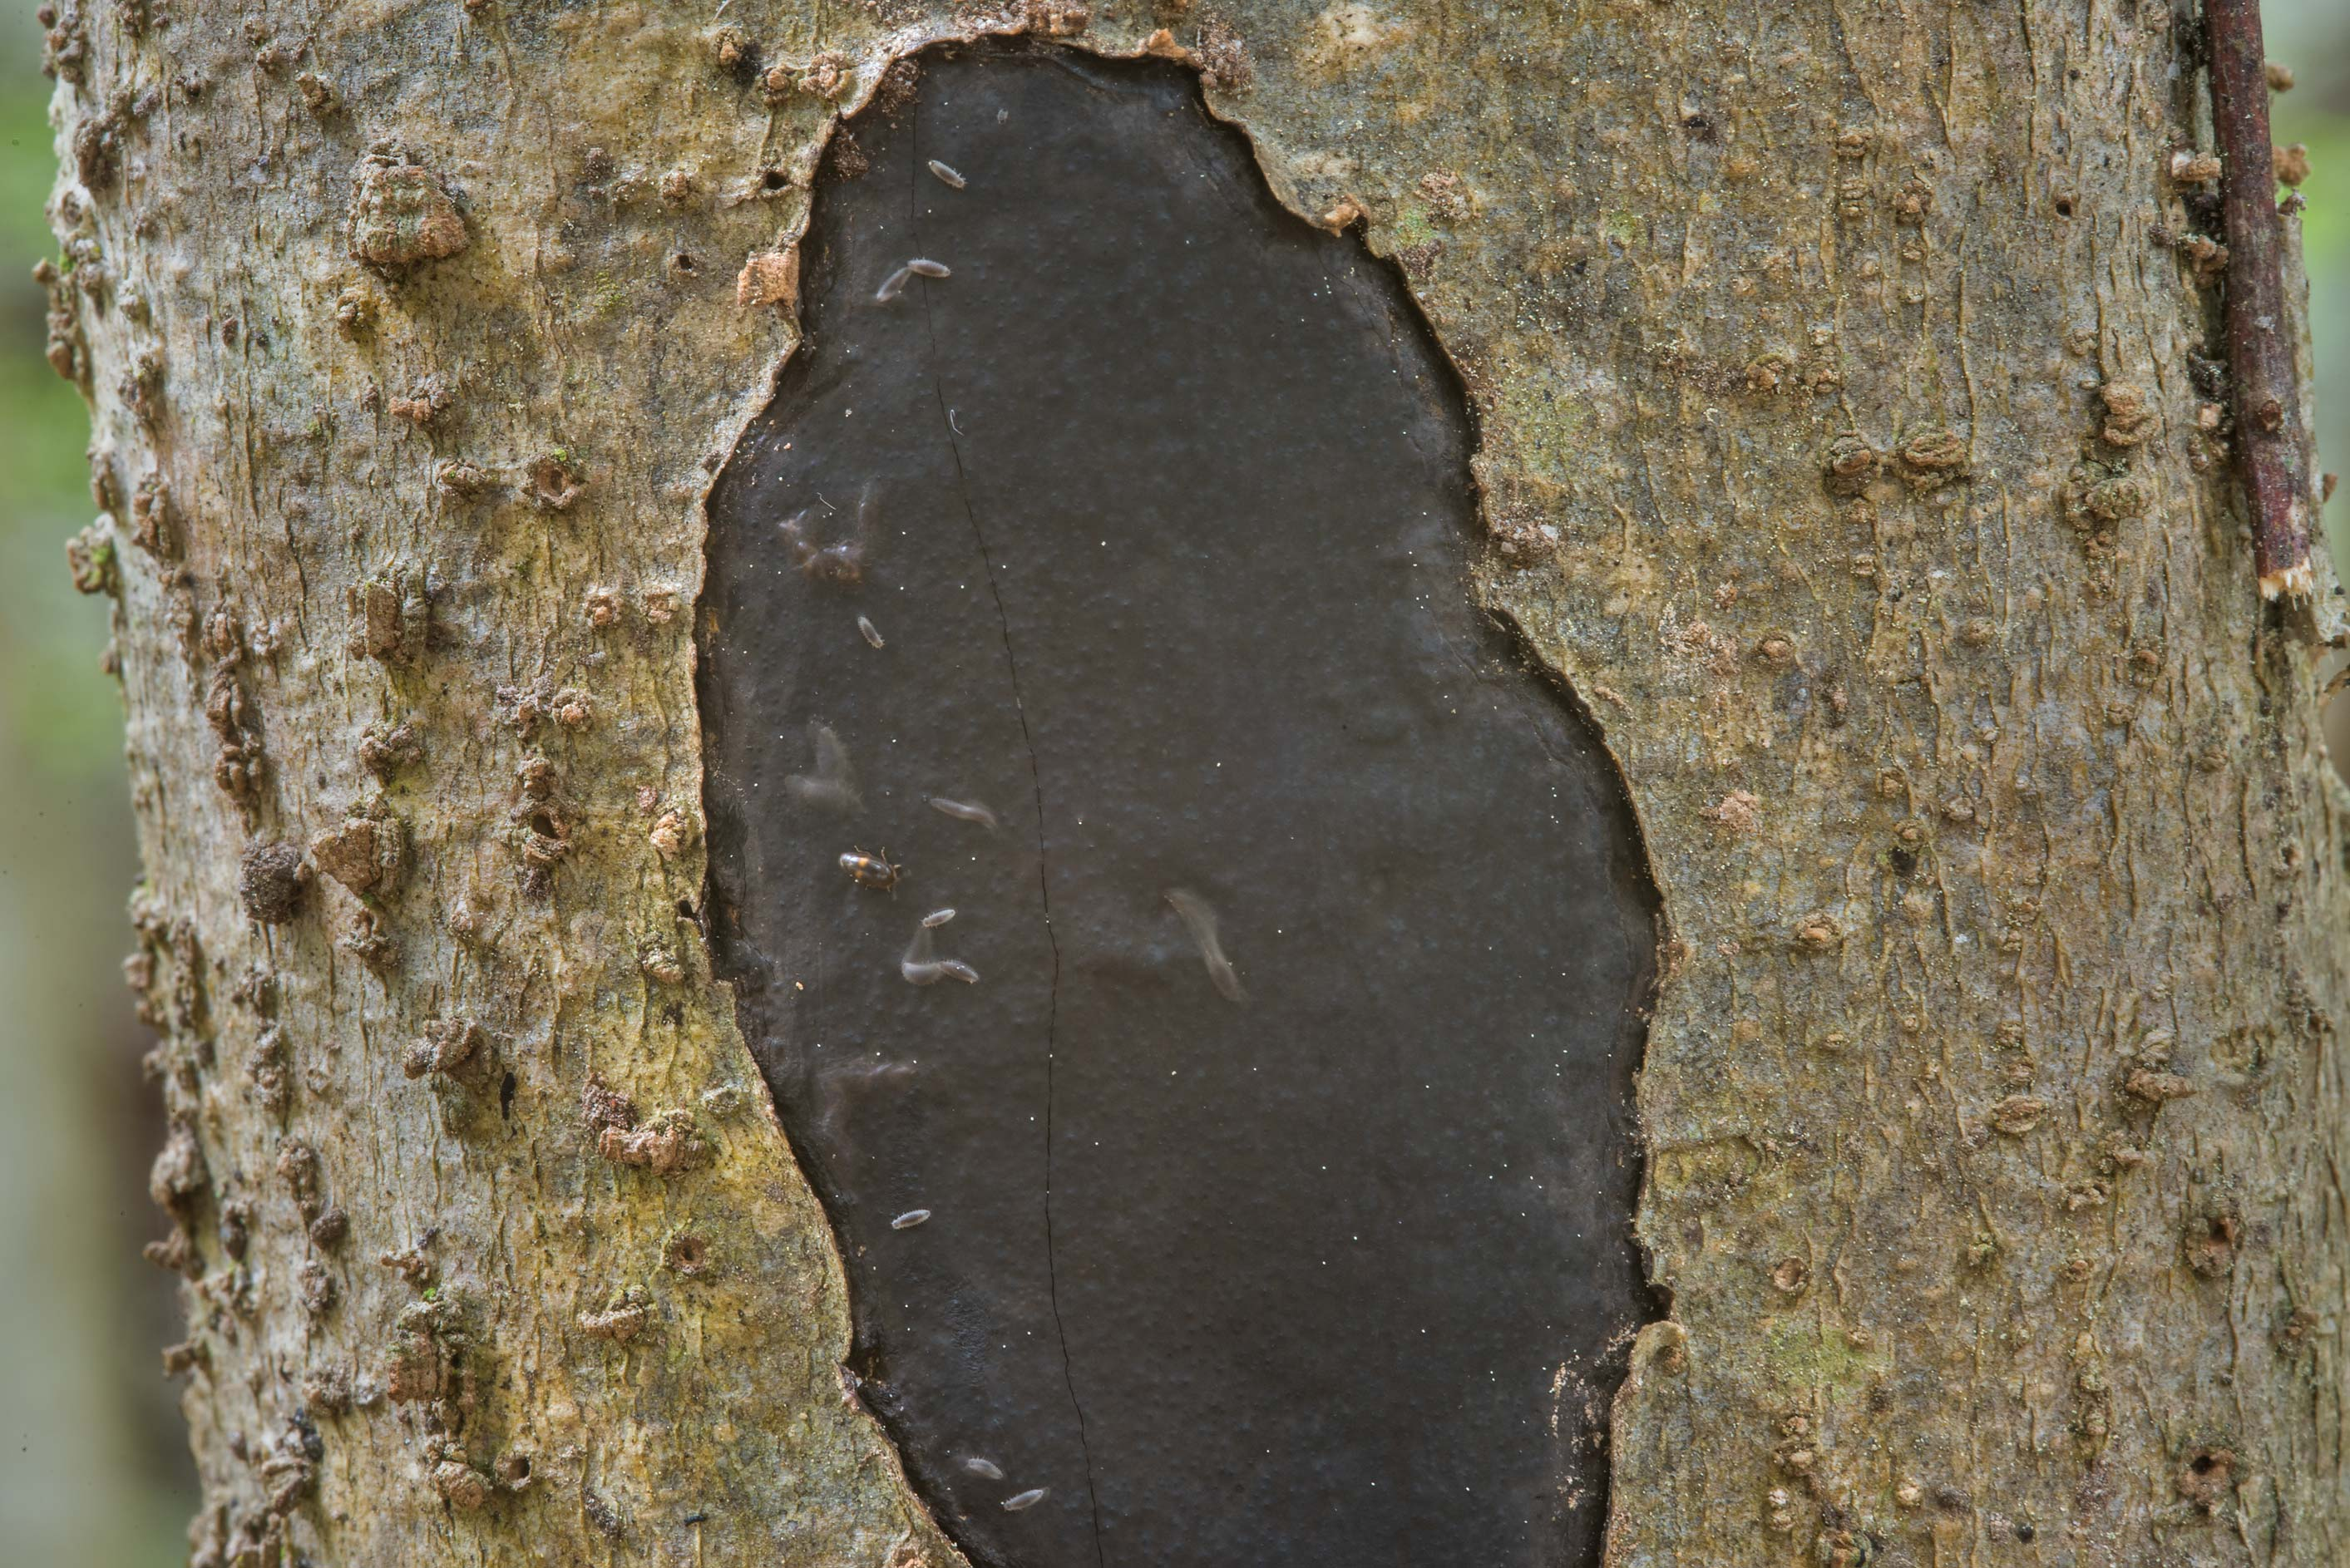 Black spreading fungus Biscogniauxia on a tree in Huntsville Park. Texas